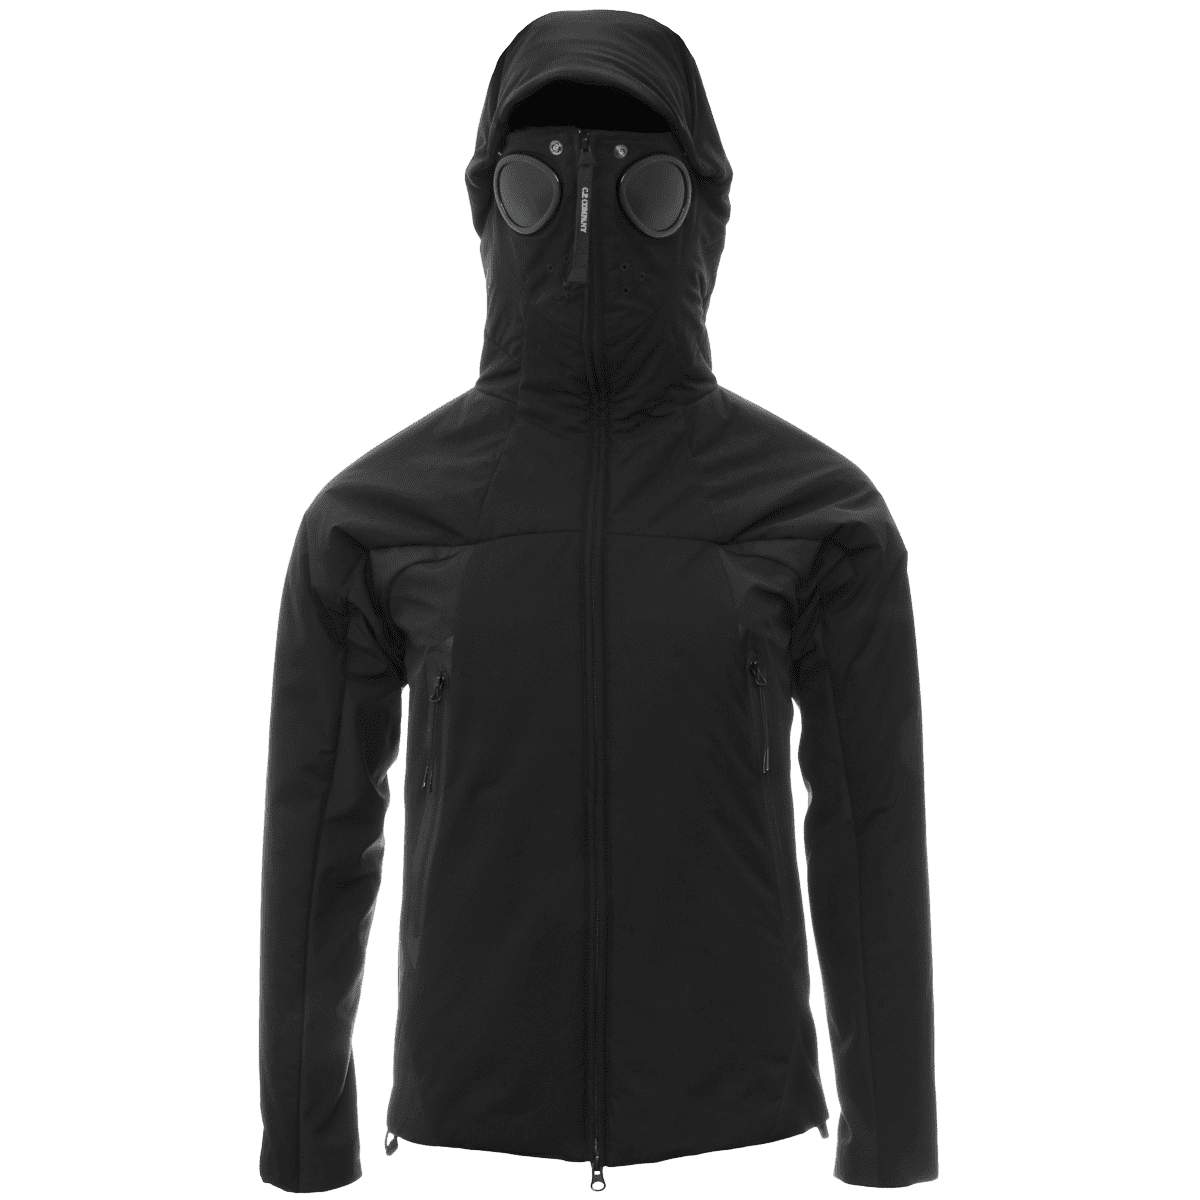 Cabinero Berlin Herrenmode SS17 C.P.Company Softshell 02CMOW127A004117M (2)